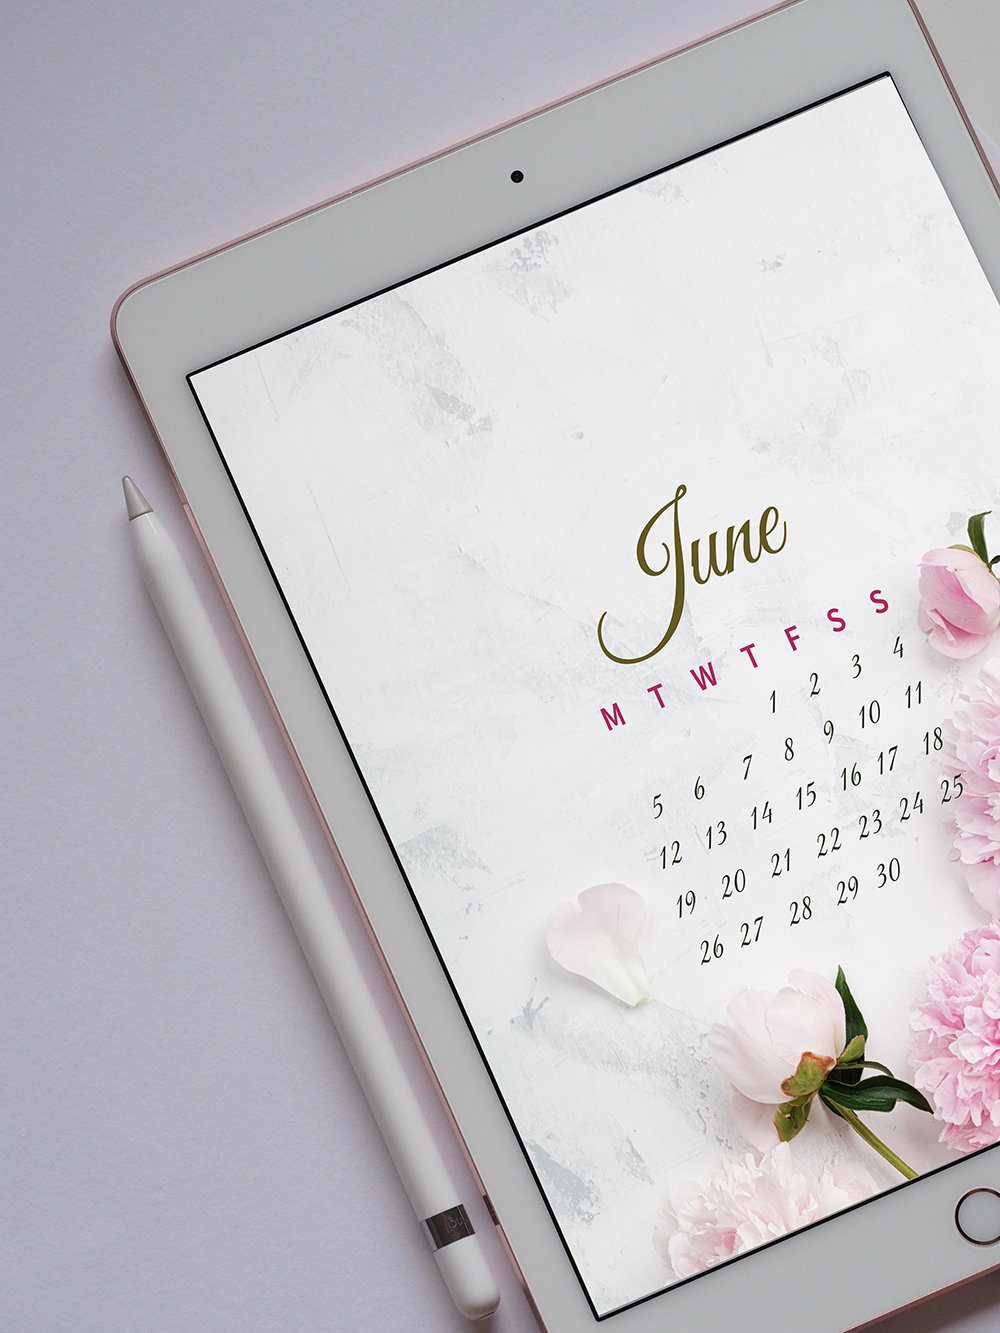 Download your  iPad Pro ,  iPad  or  iPad Mini  wallpaper calendar